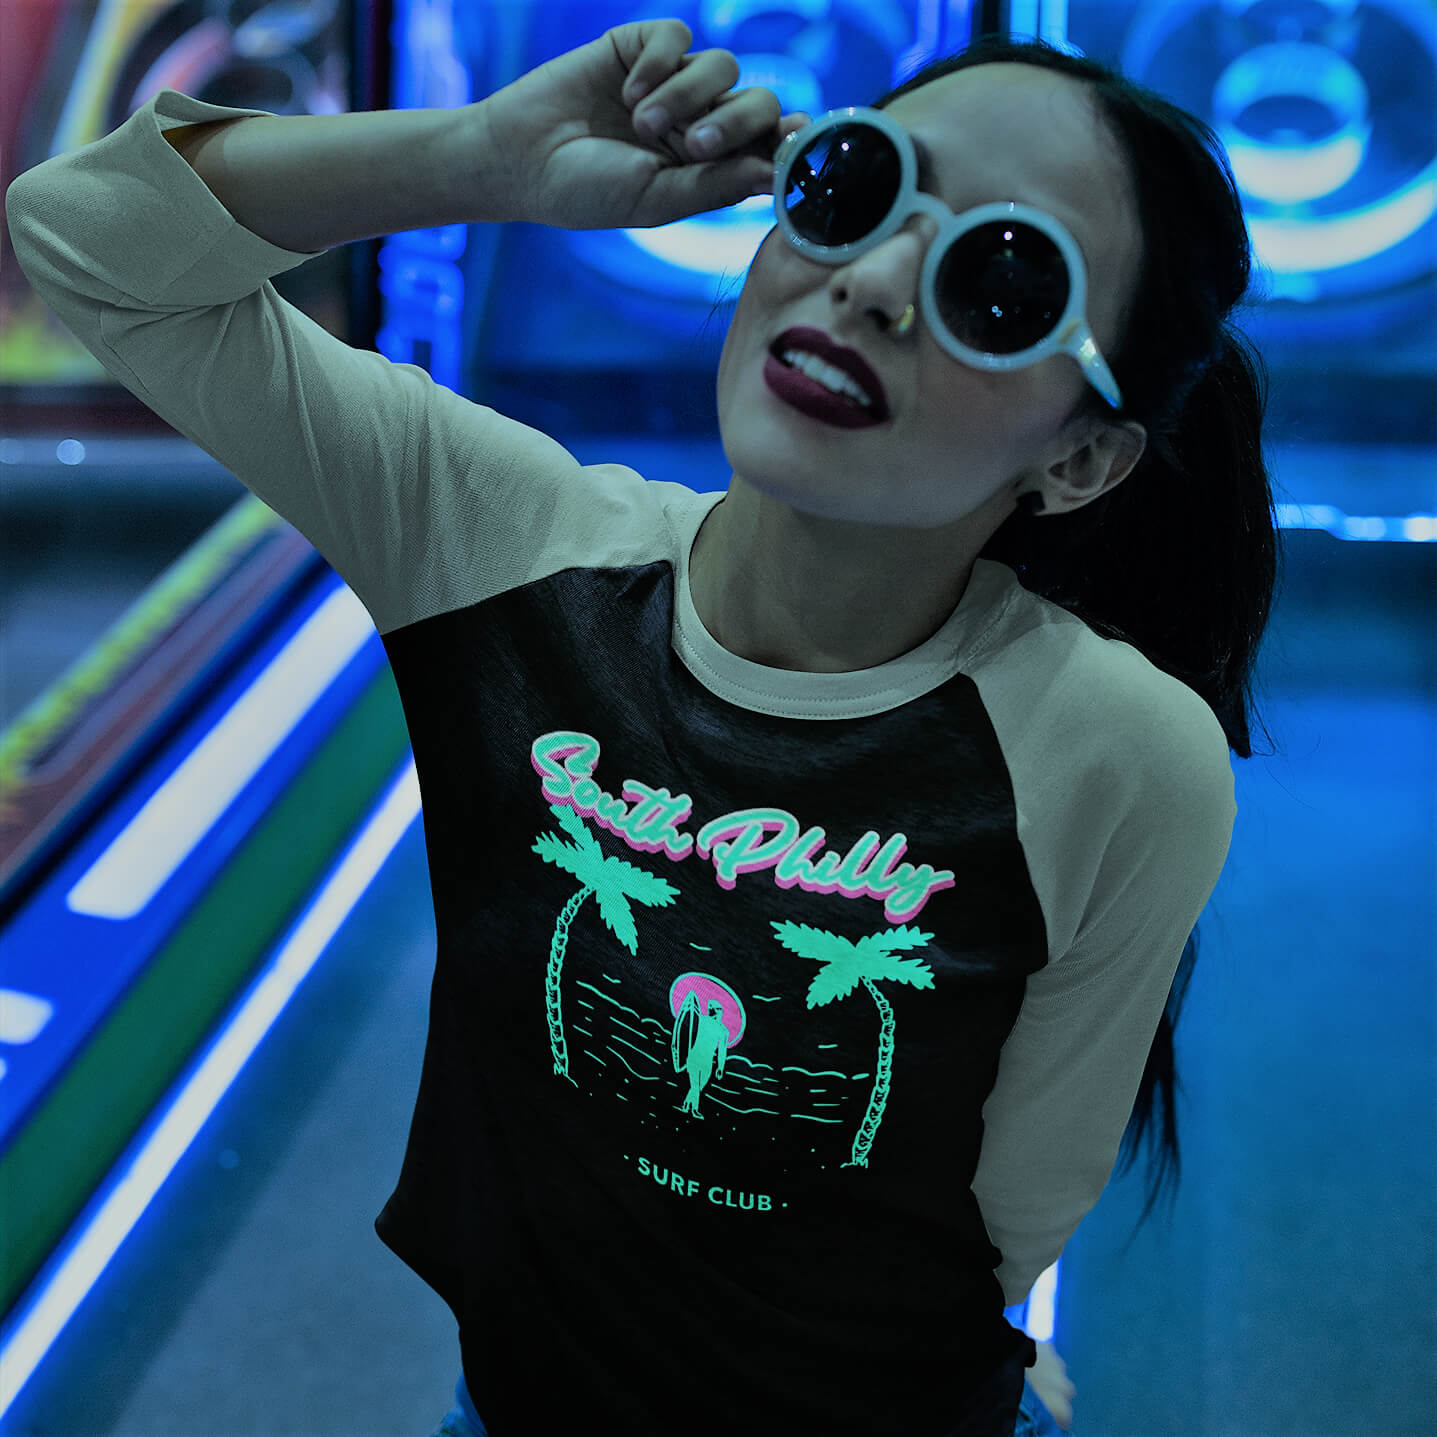 Cool Philly girl wearing a Phillygoat South Philly Surfers raglan tee in a neon arcade